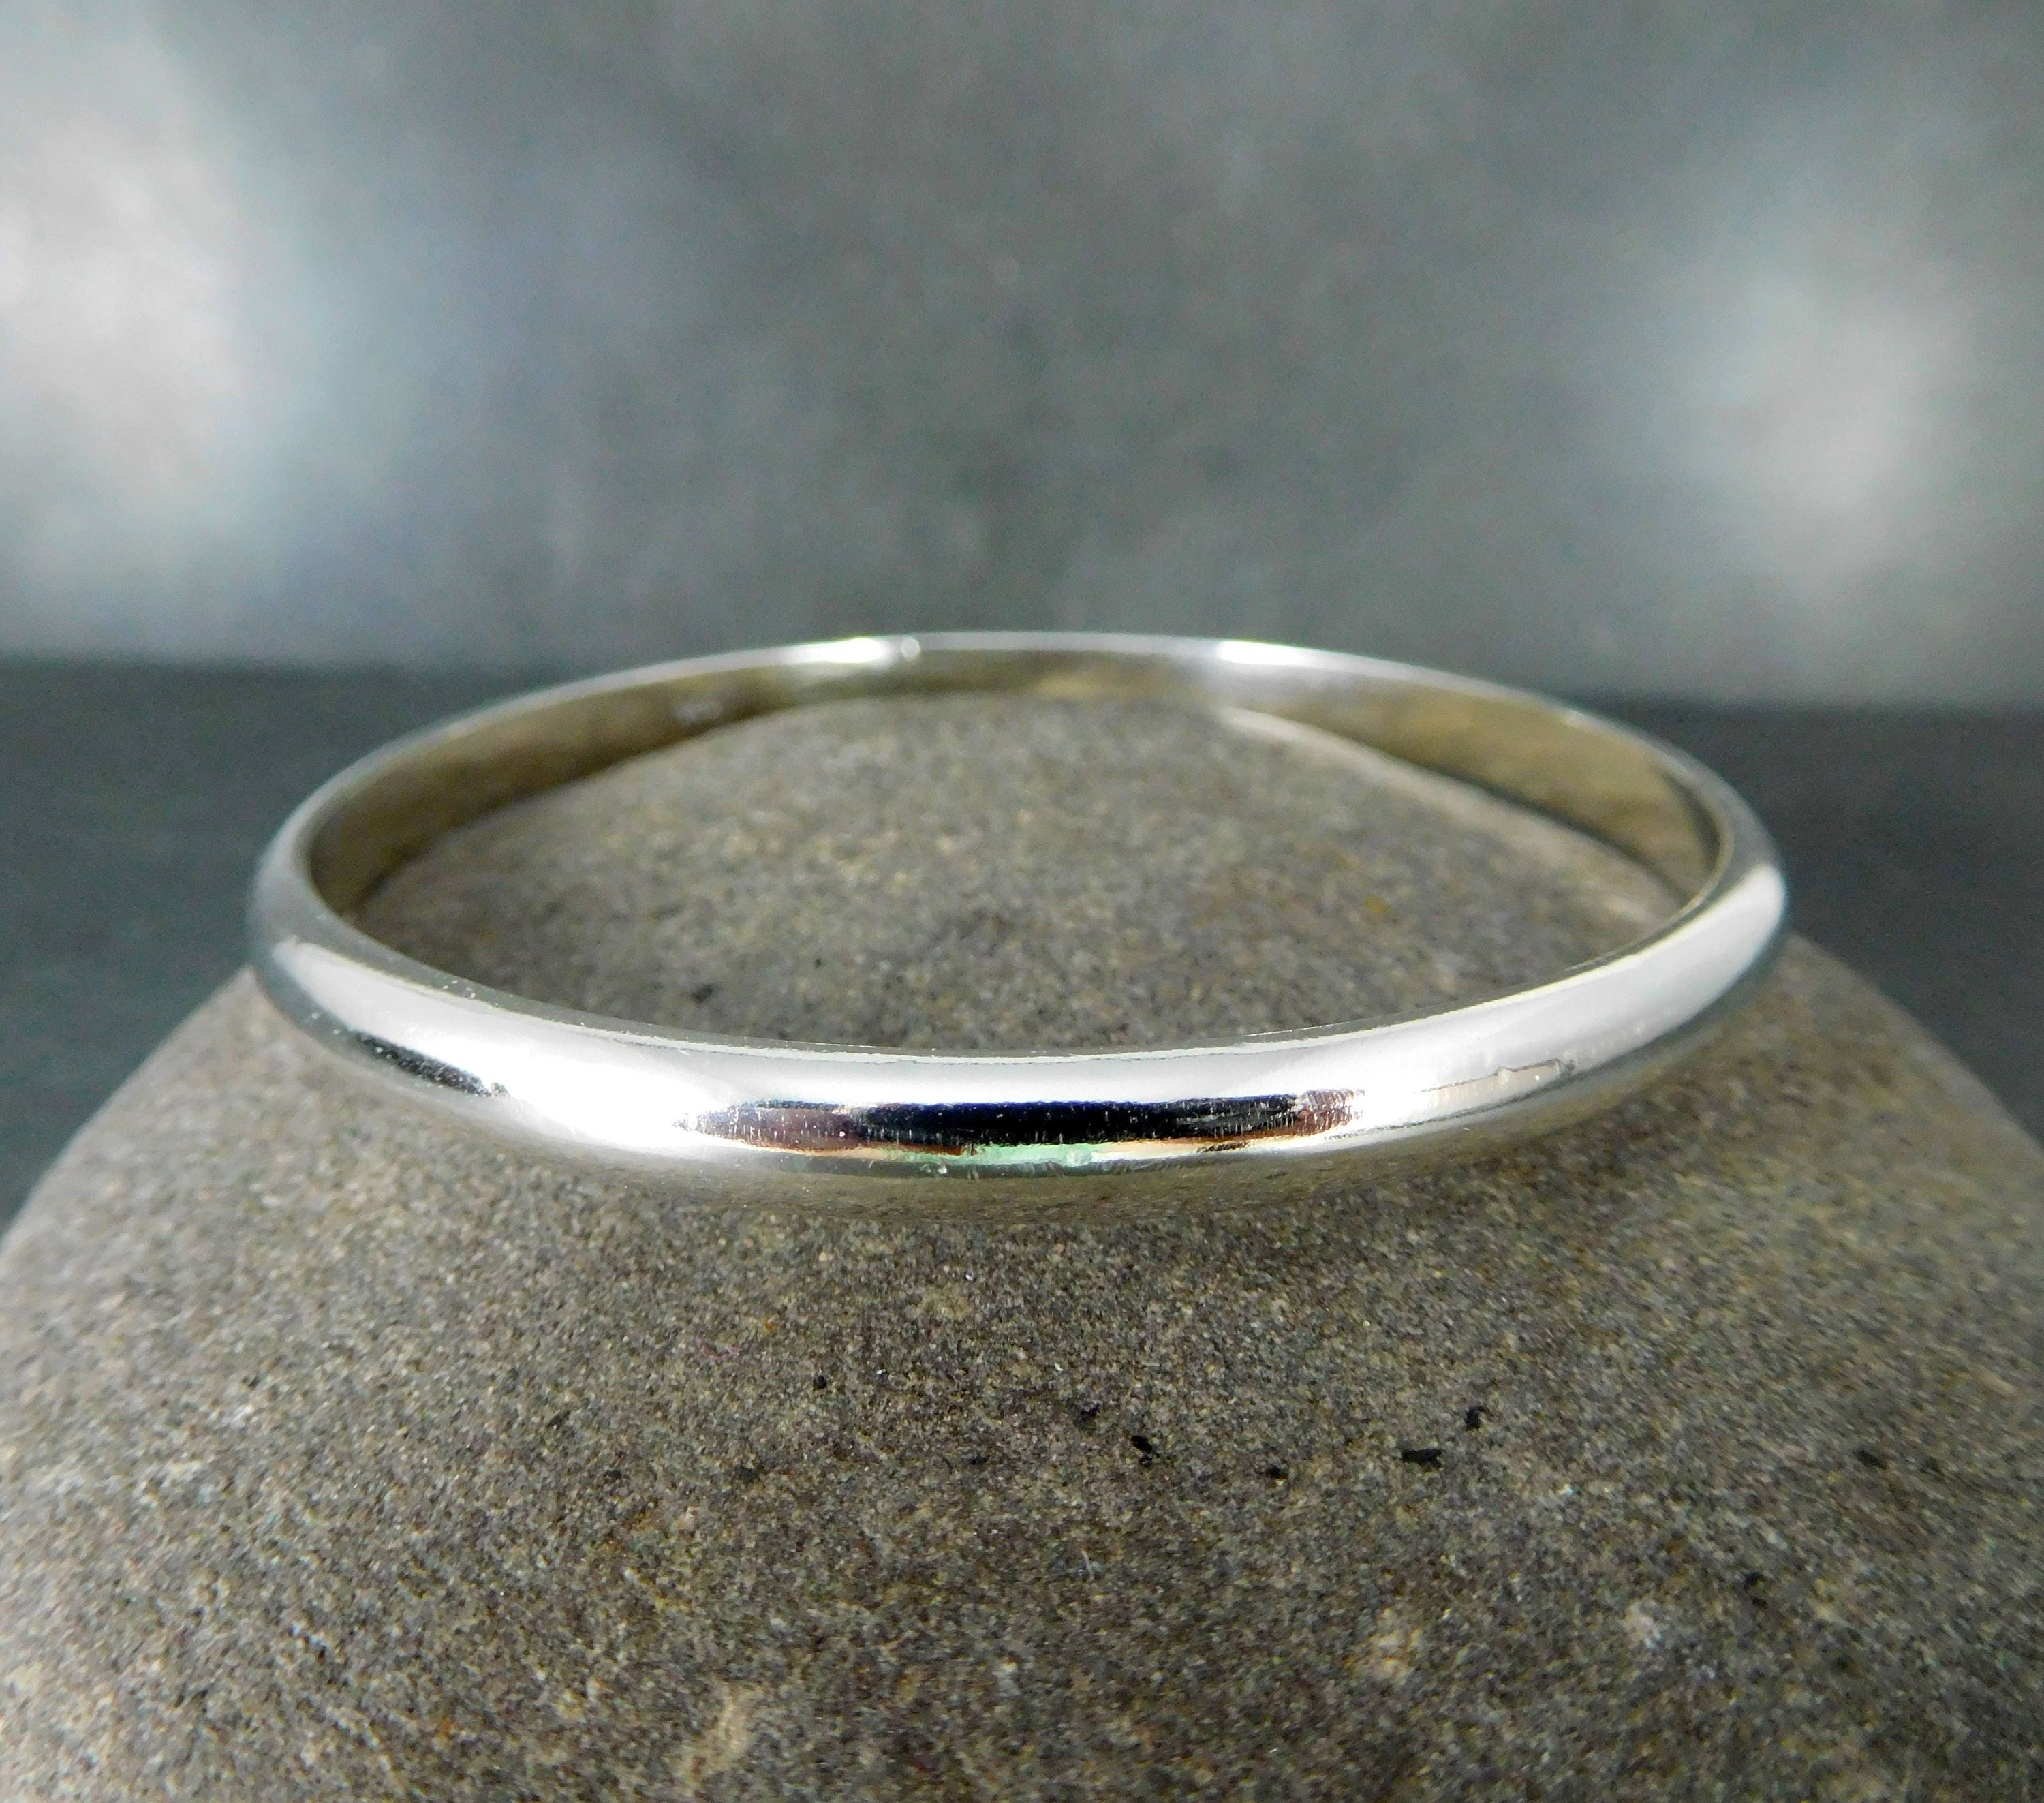 keynes bangles plain bangle designs silver sterling file bracelets w a textured milton jewellery handmade